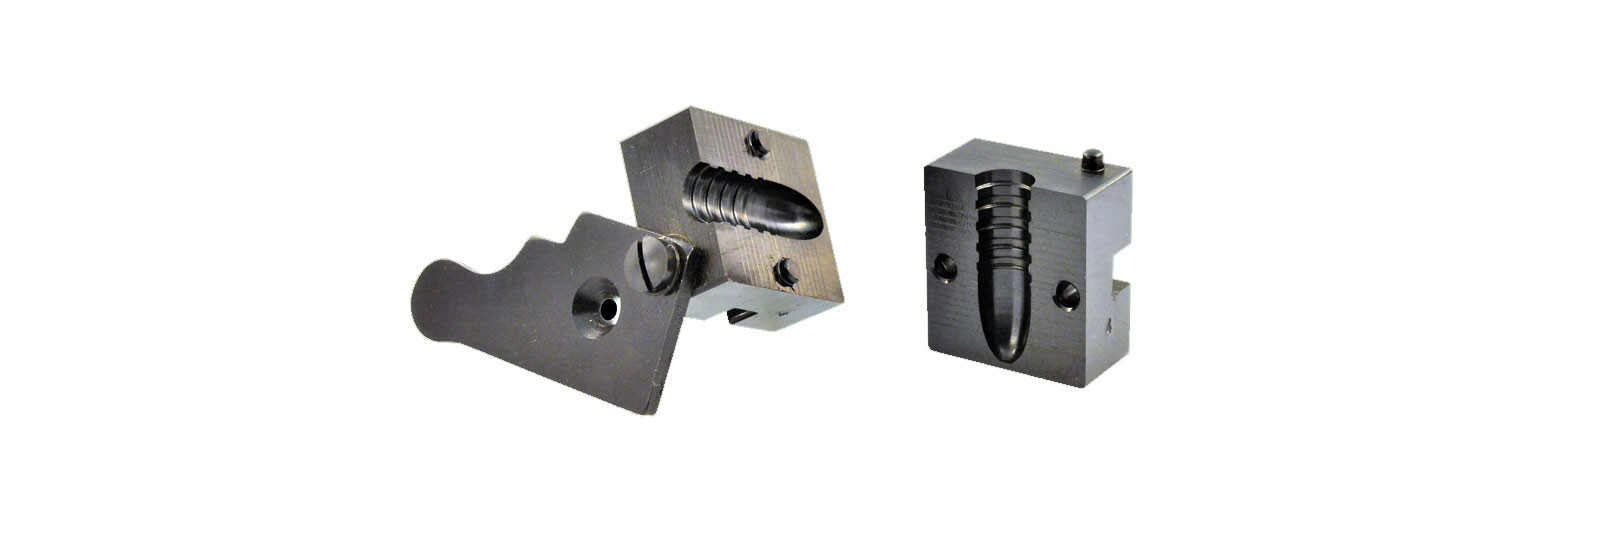 Bullet mould block with 1 cavity - conical bullet